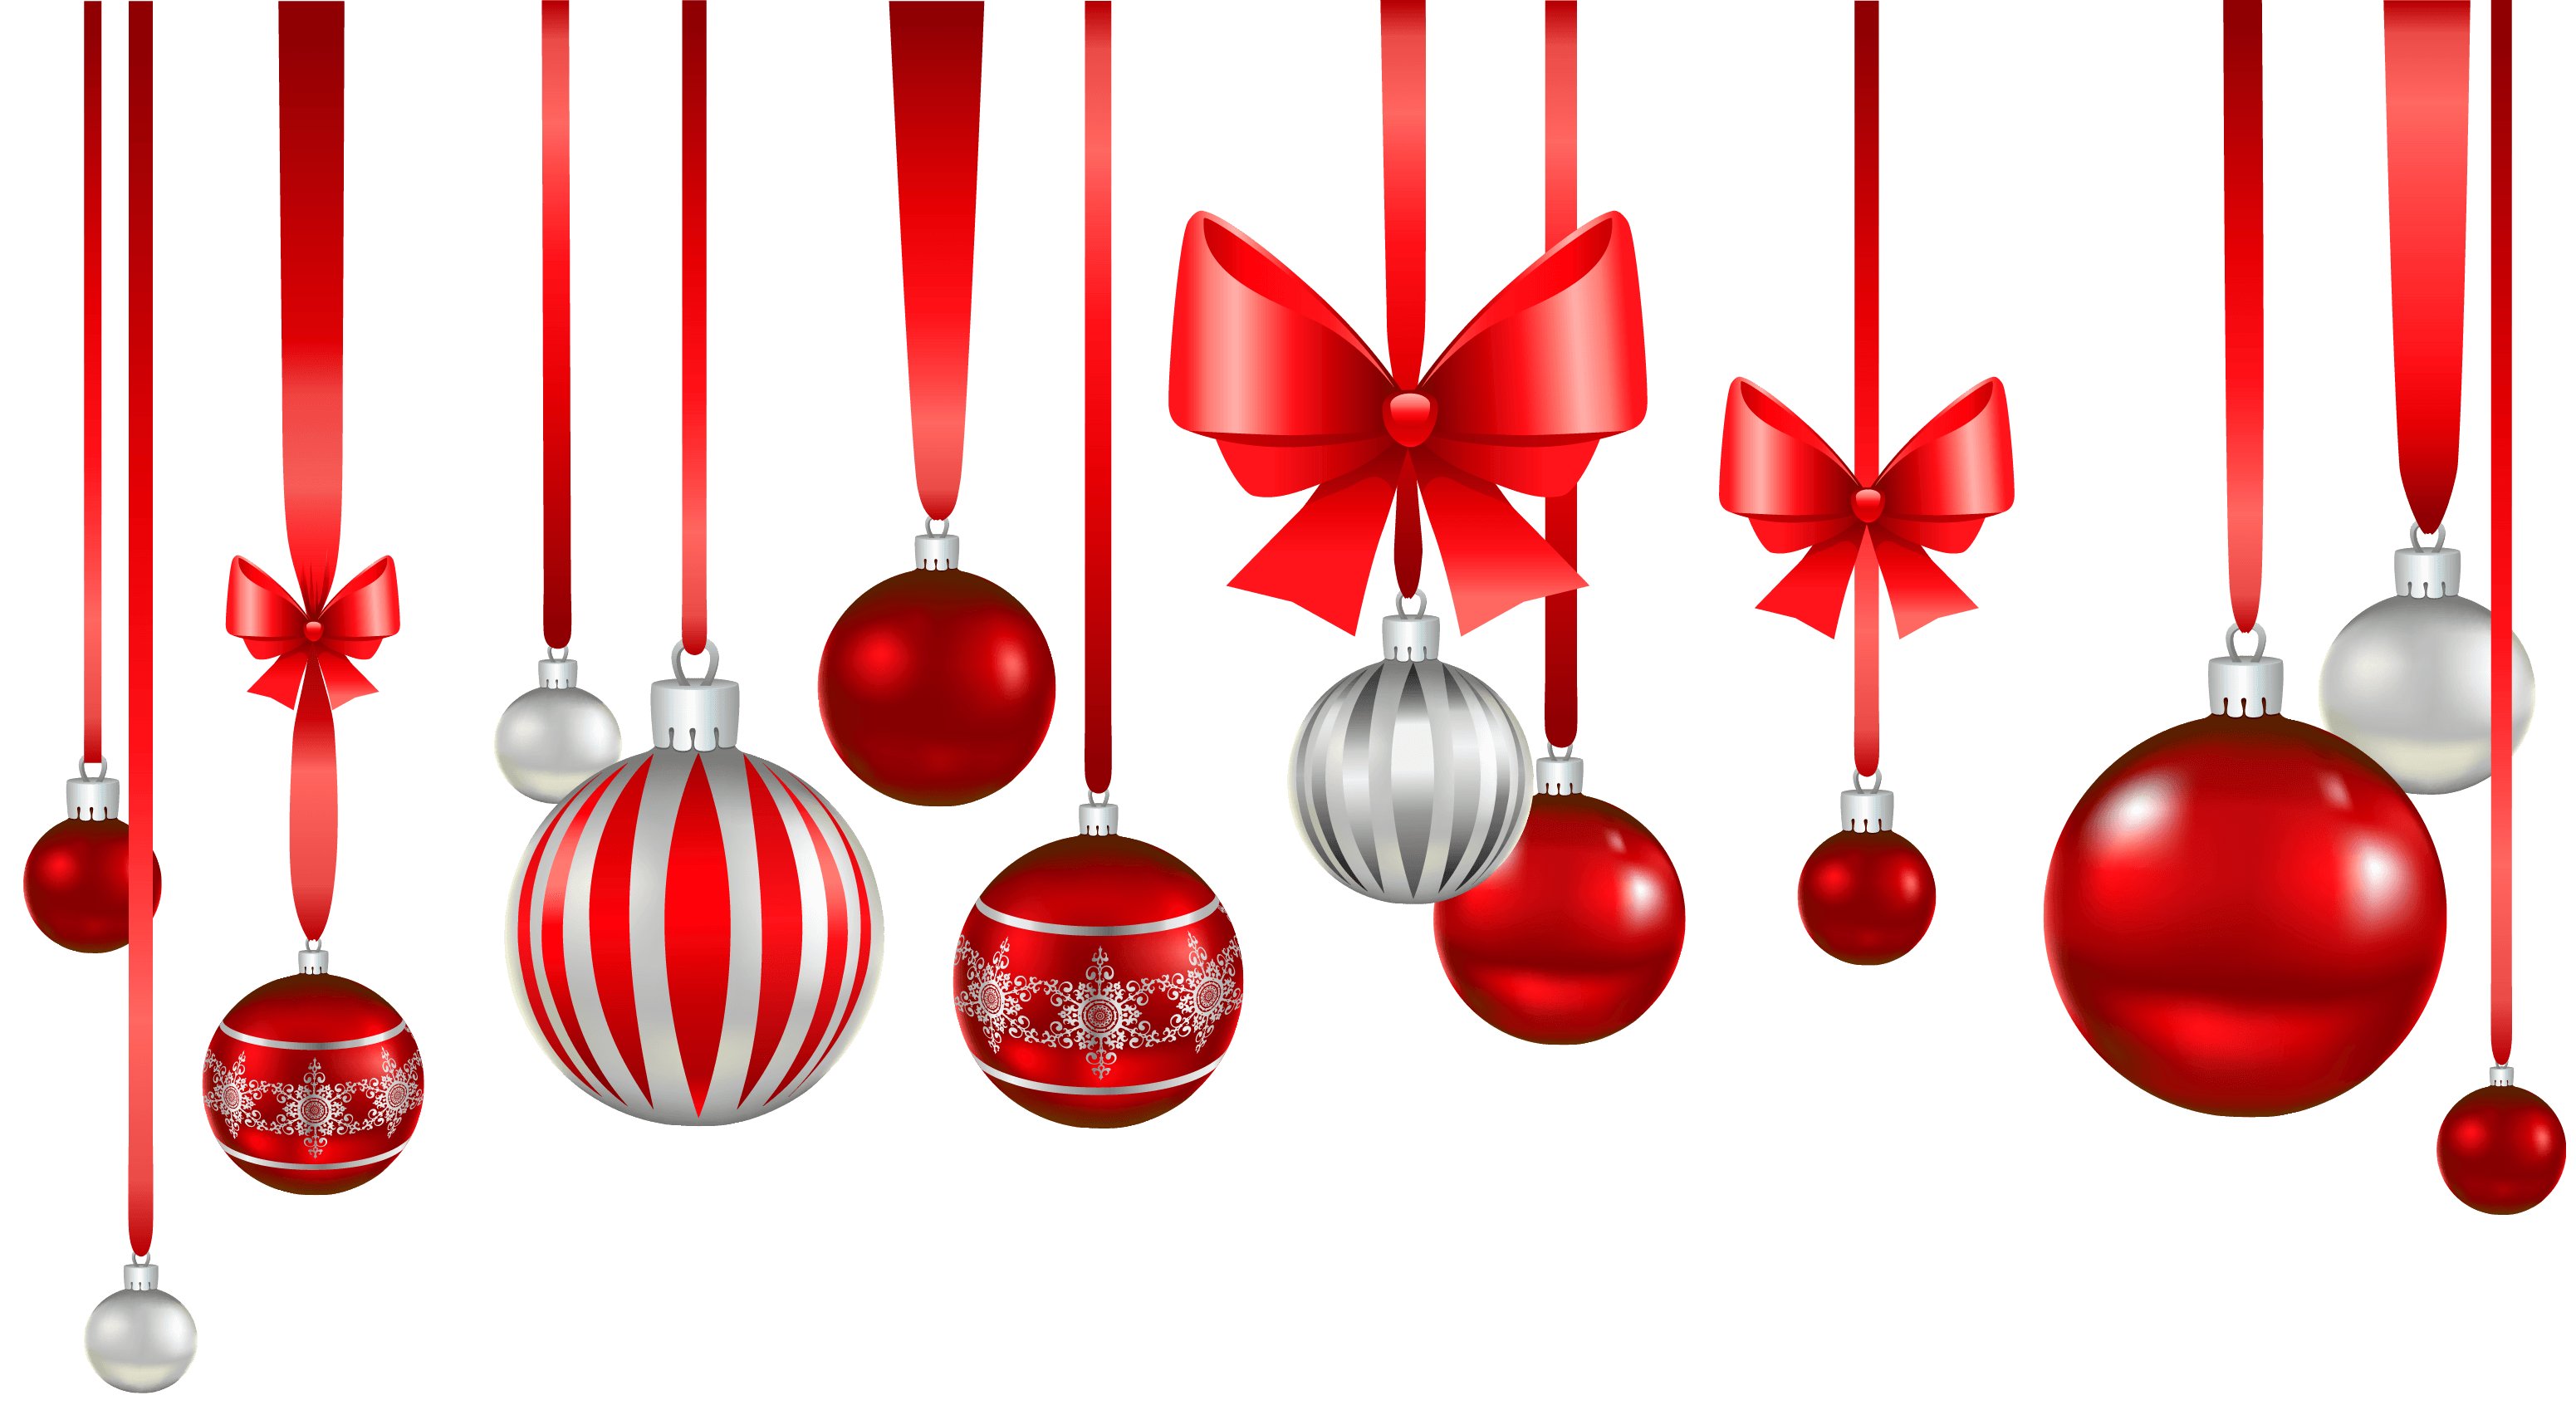 Christmas cheerleader clipart transparent stock 28+ Collection of Christmas Cheer Clipart Free | High quality, free ... transparent stock